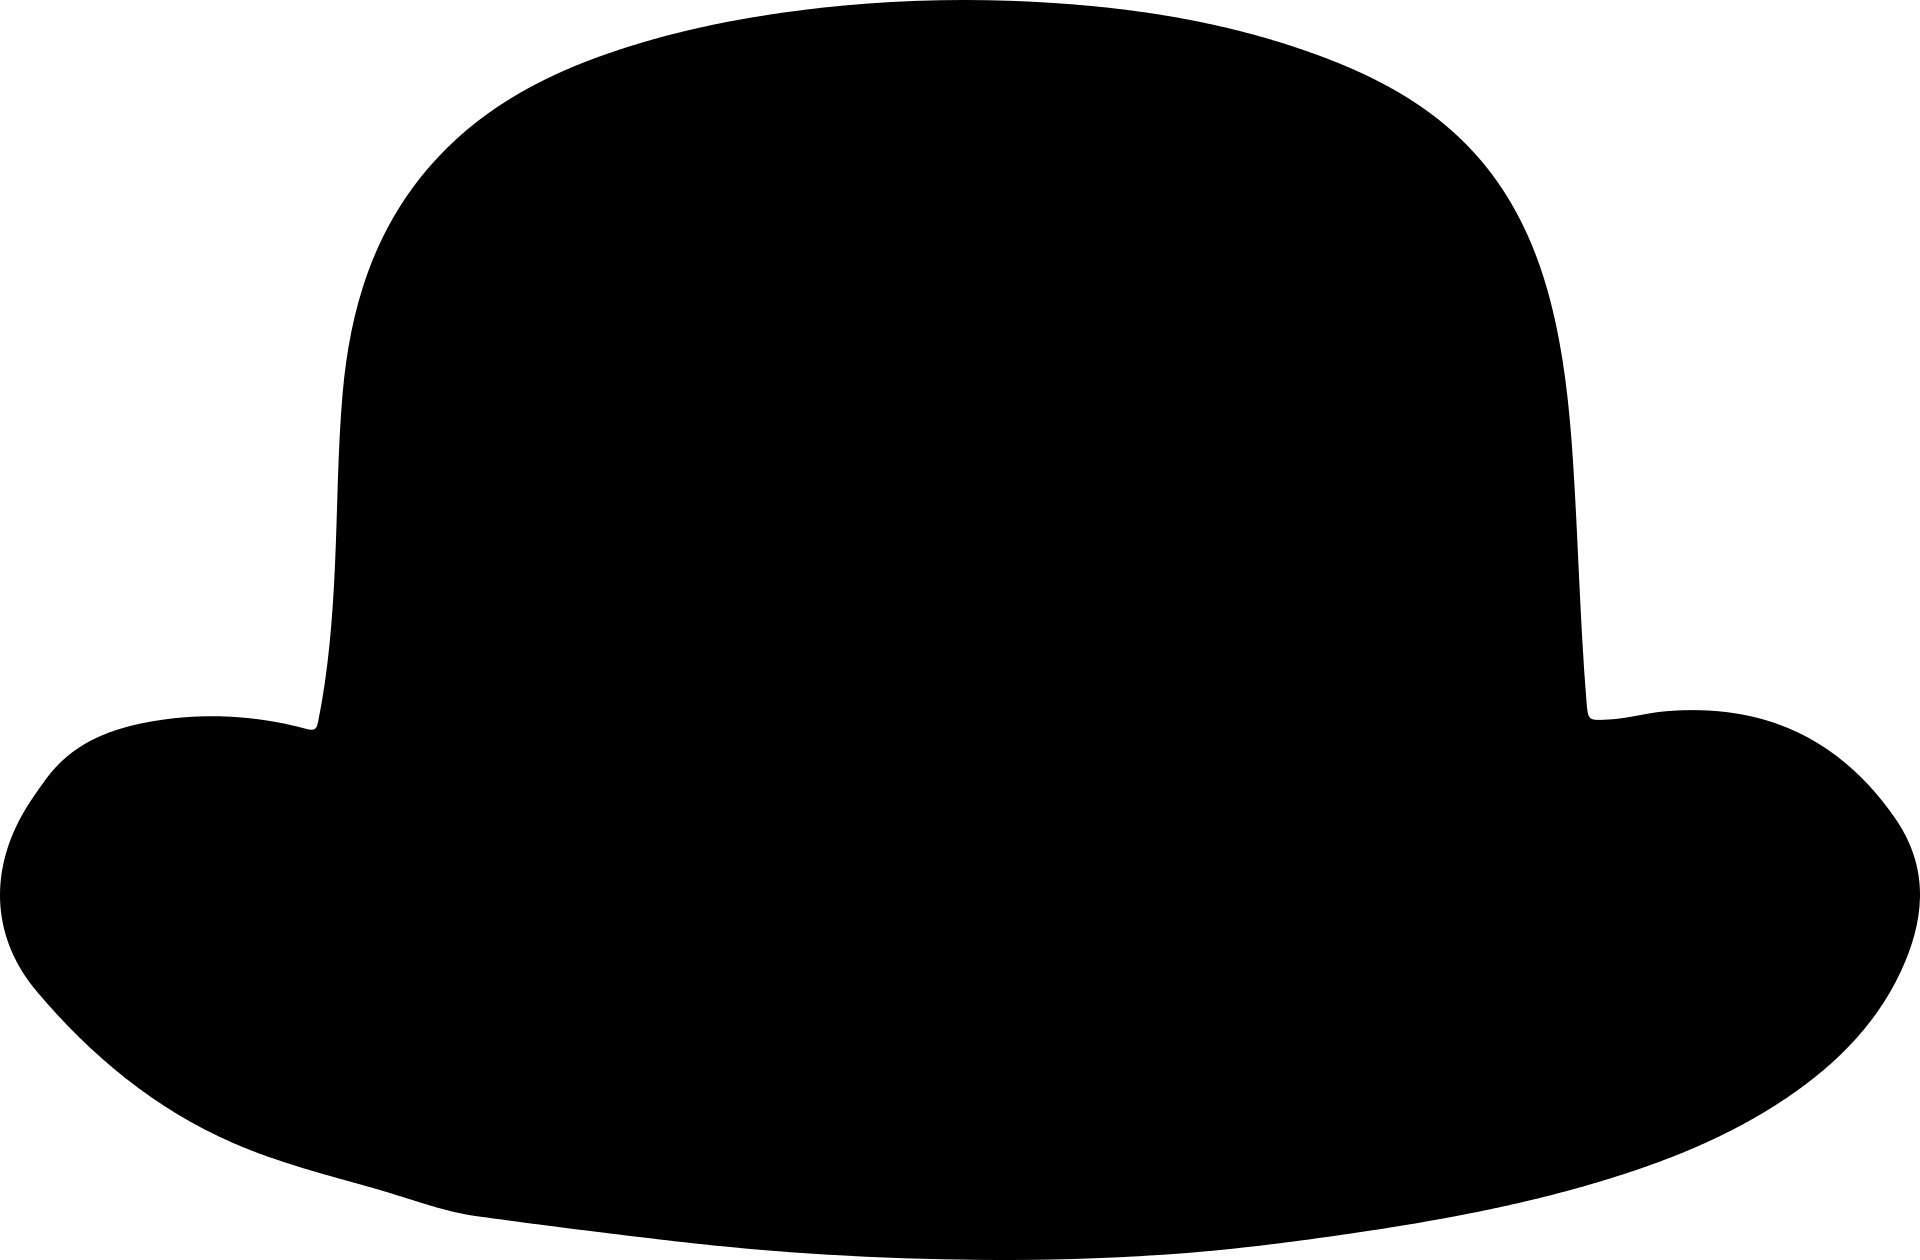 Bowler Classic Hat Template